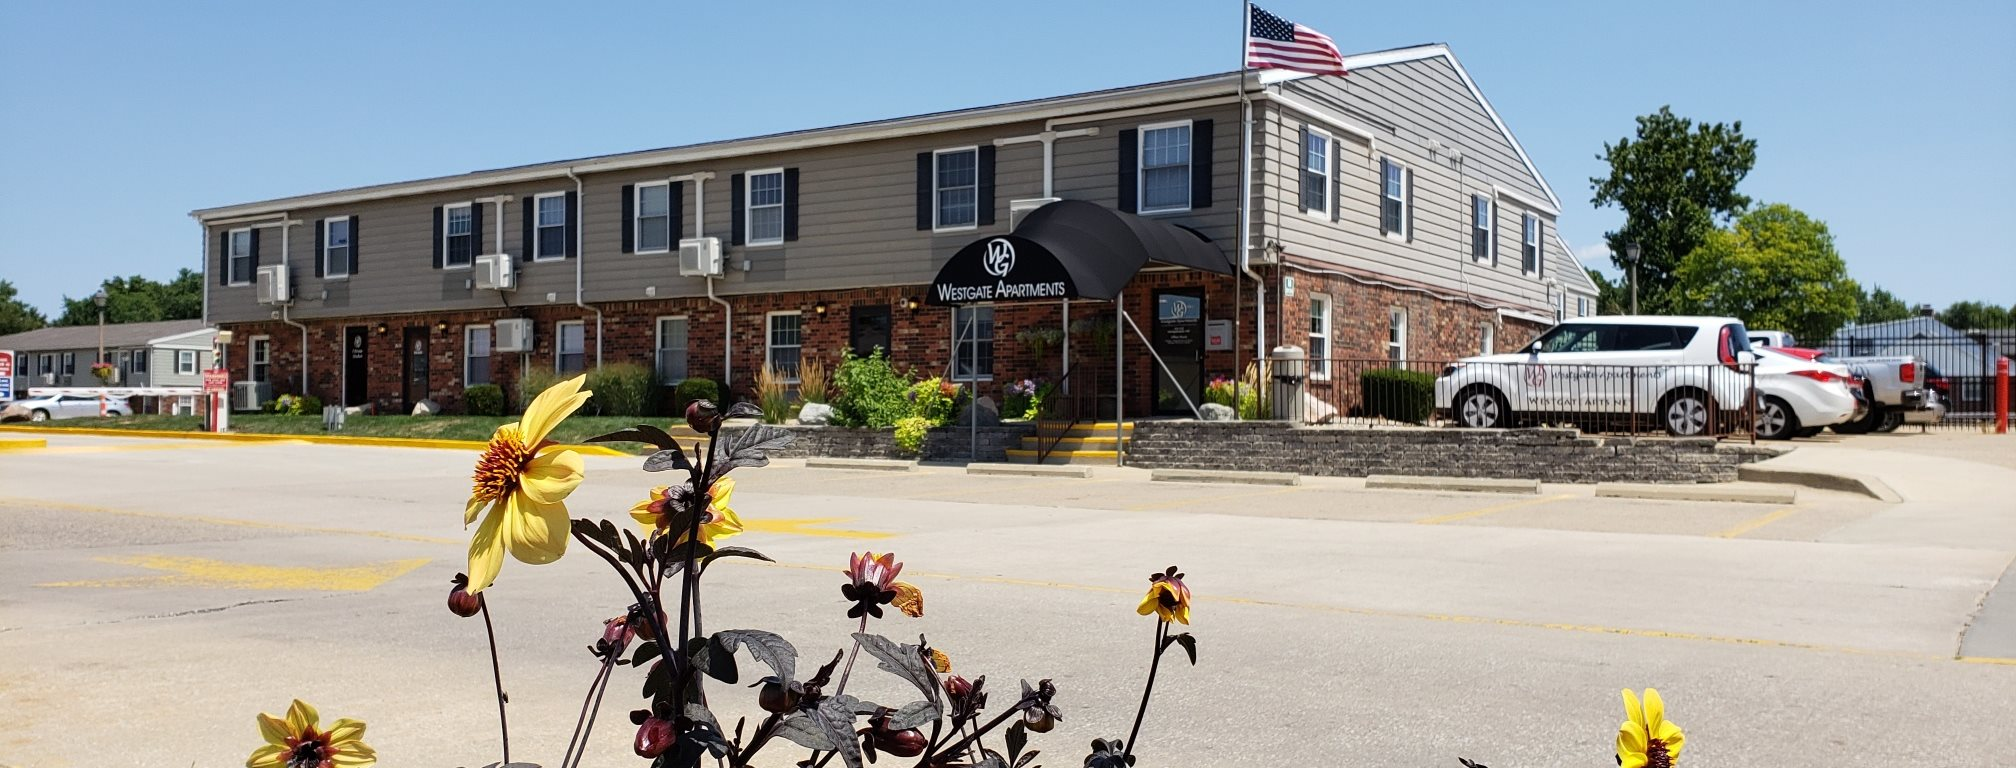 Westgate Apartments | Apartments in Champaign, IL